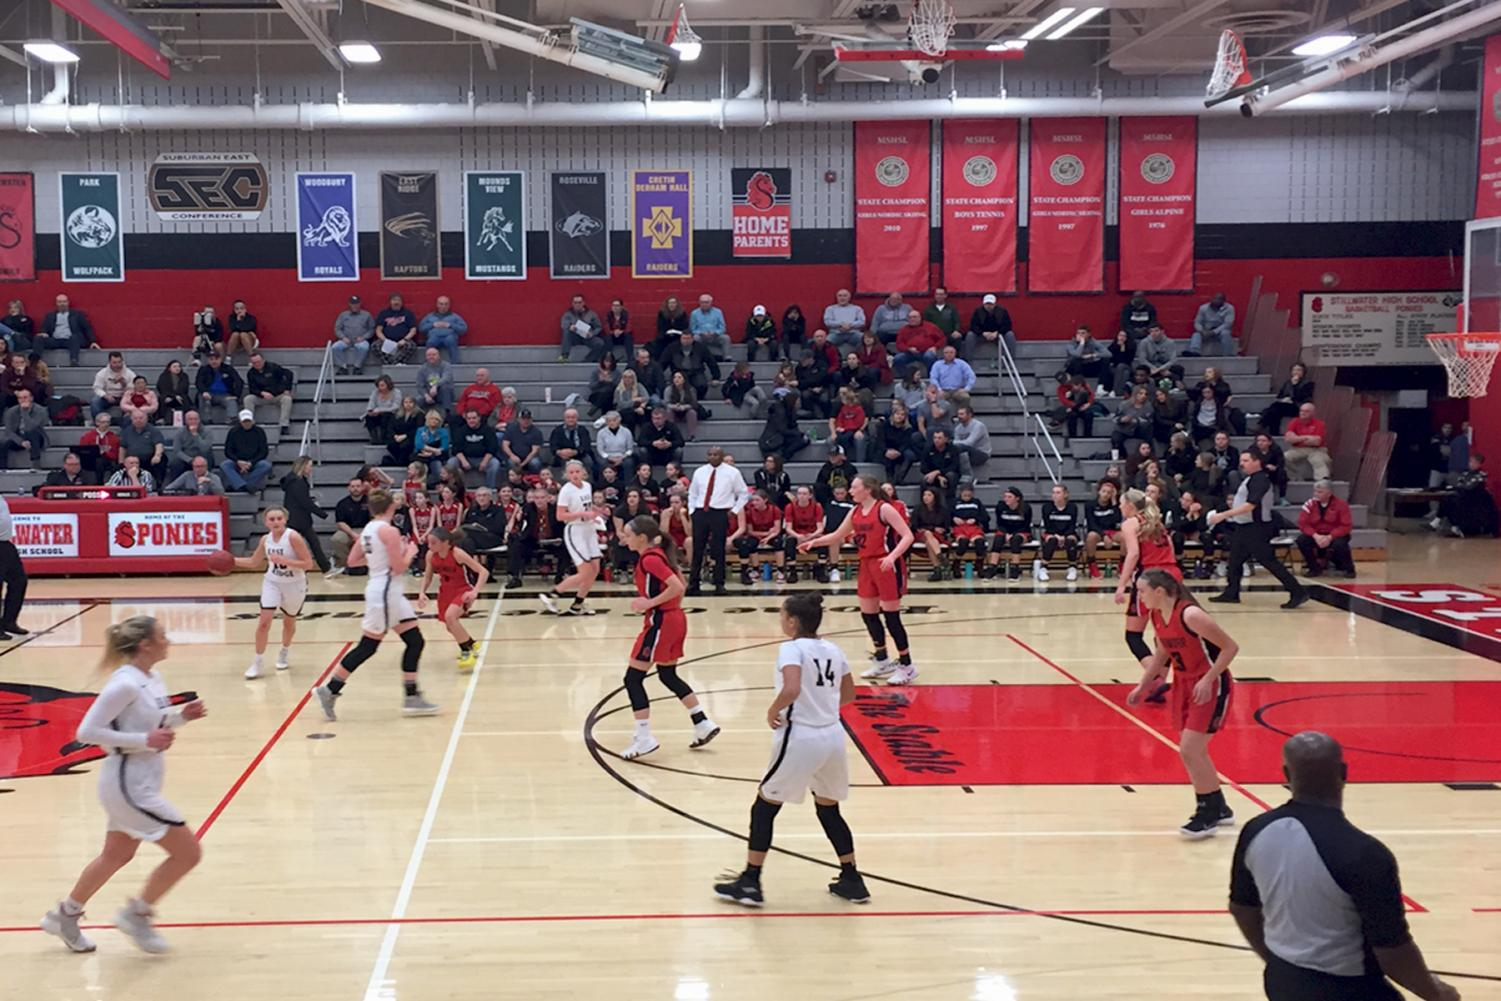 Stillwater+girls+basketball+team+won+their+first+conference+game+against+East+Ridge+on+Jan.+4.+The+final+score+was+75-26.+